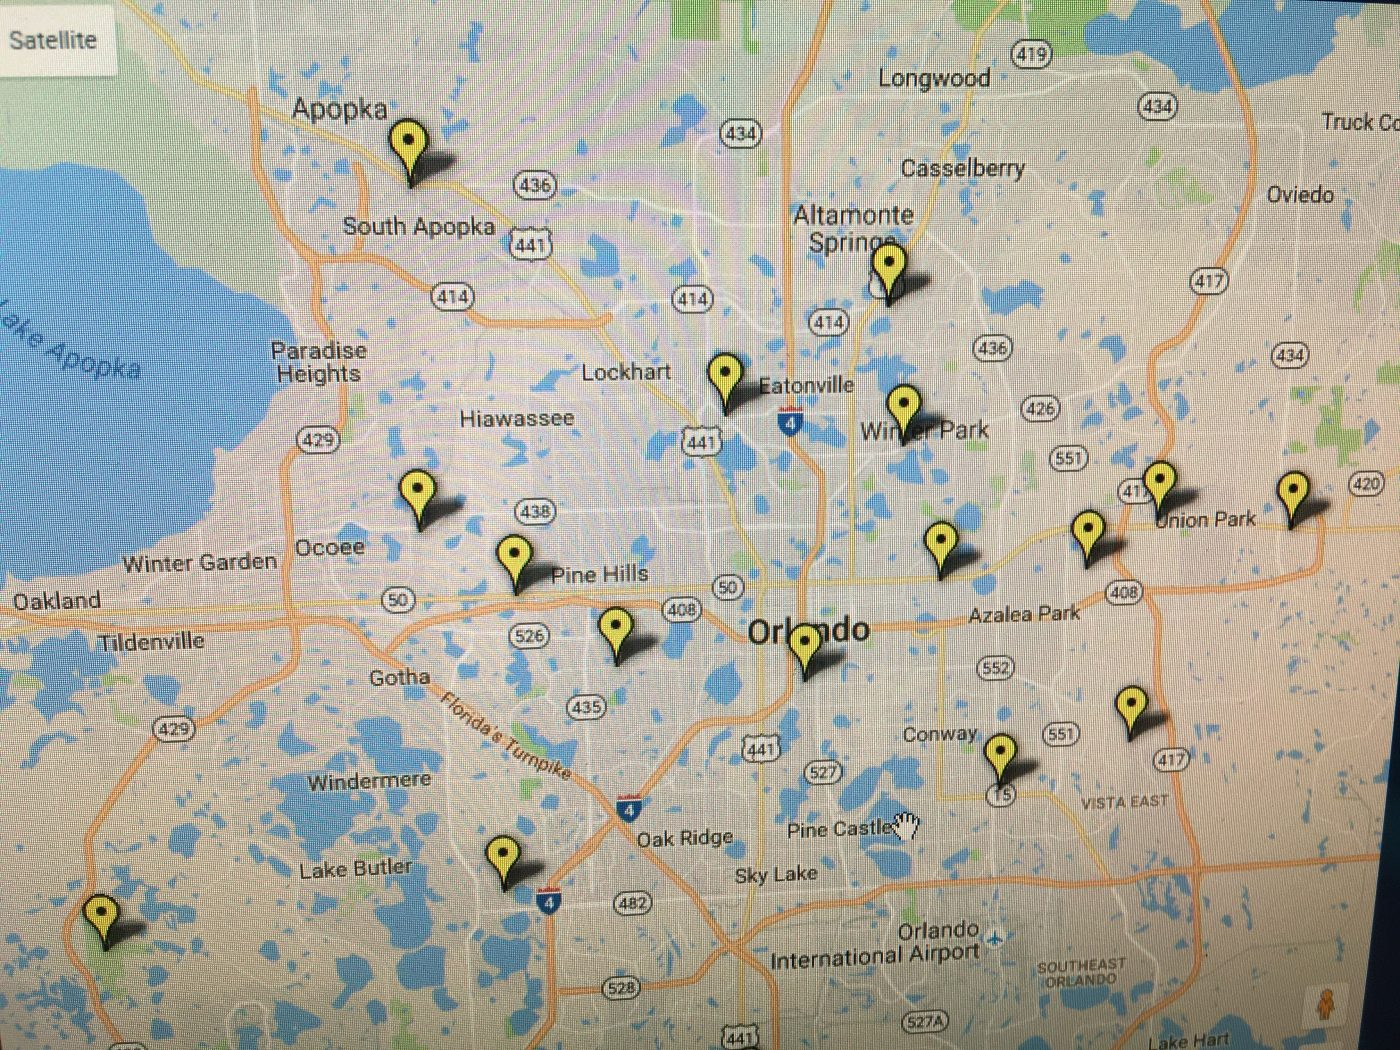 Vote Early locations map near Orlando Central Florida